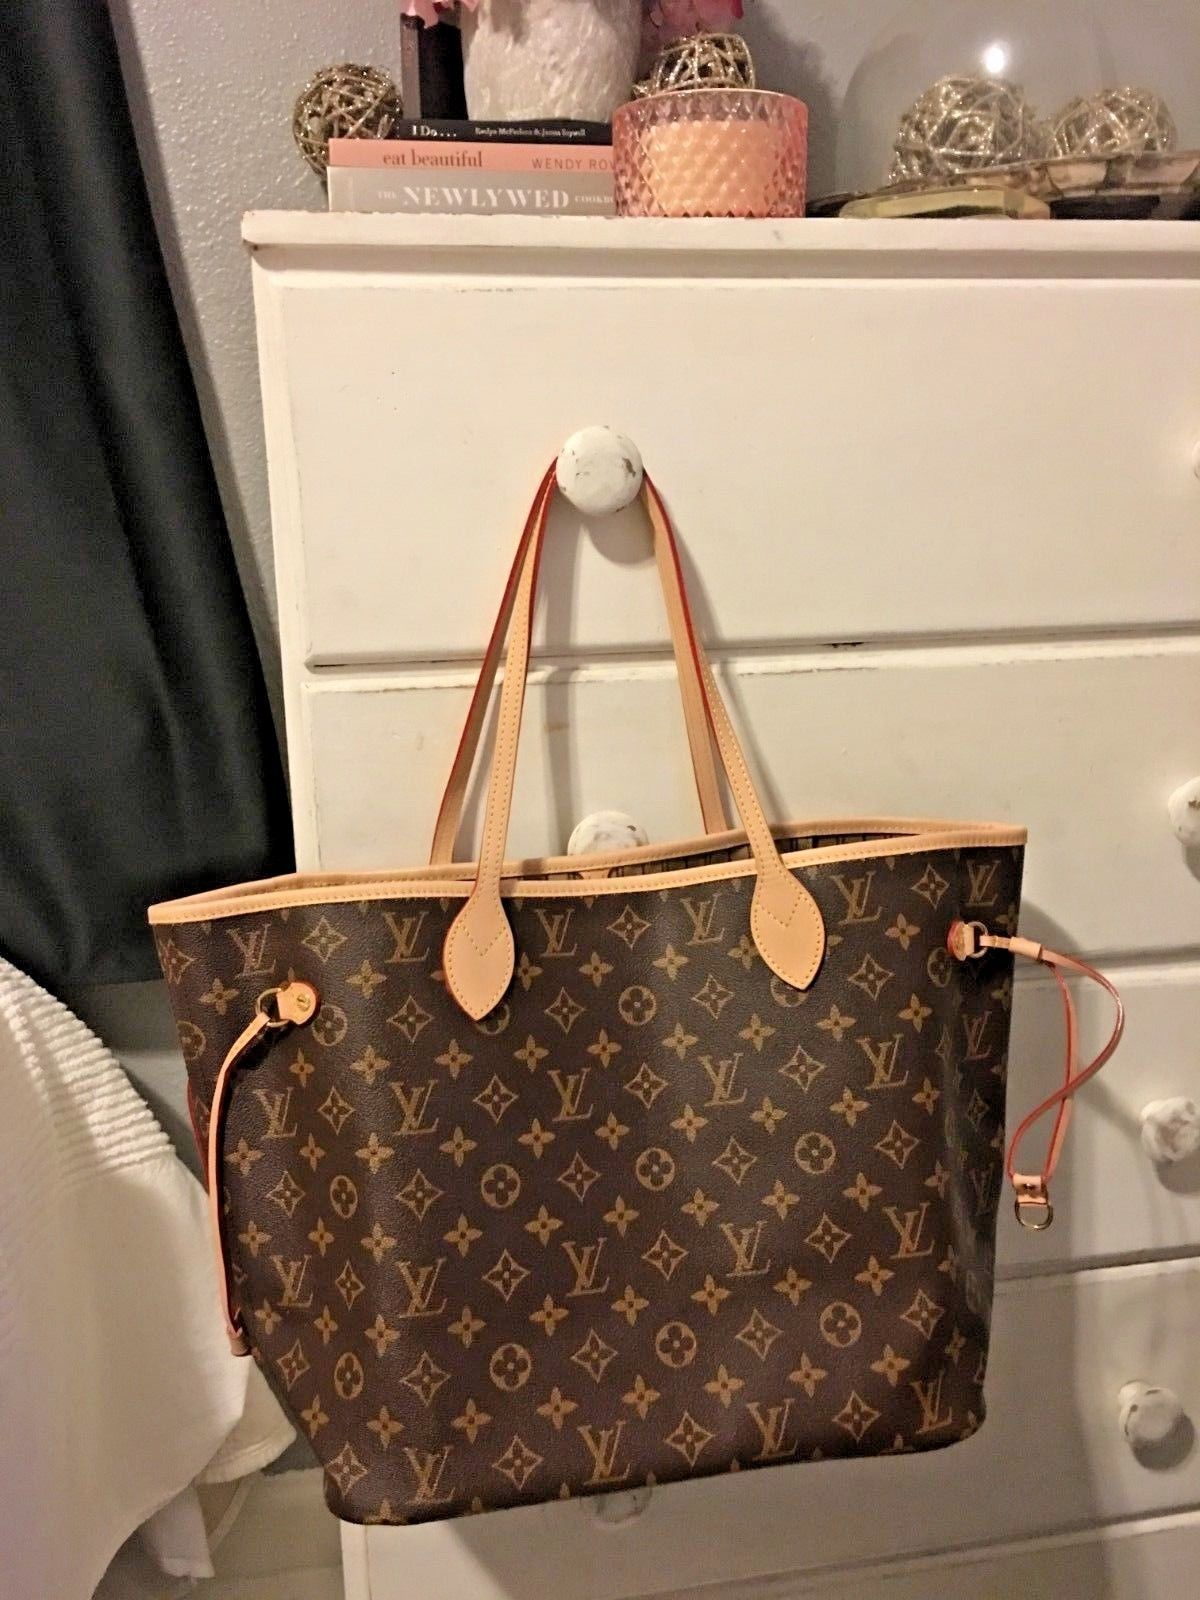 cd090d30bdbc Details about AUTHENTIC LOUIS VUITTON NEVERFULL MM SHOULDER TOTE BAG ...